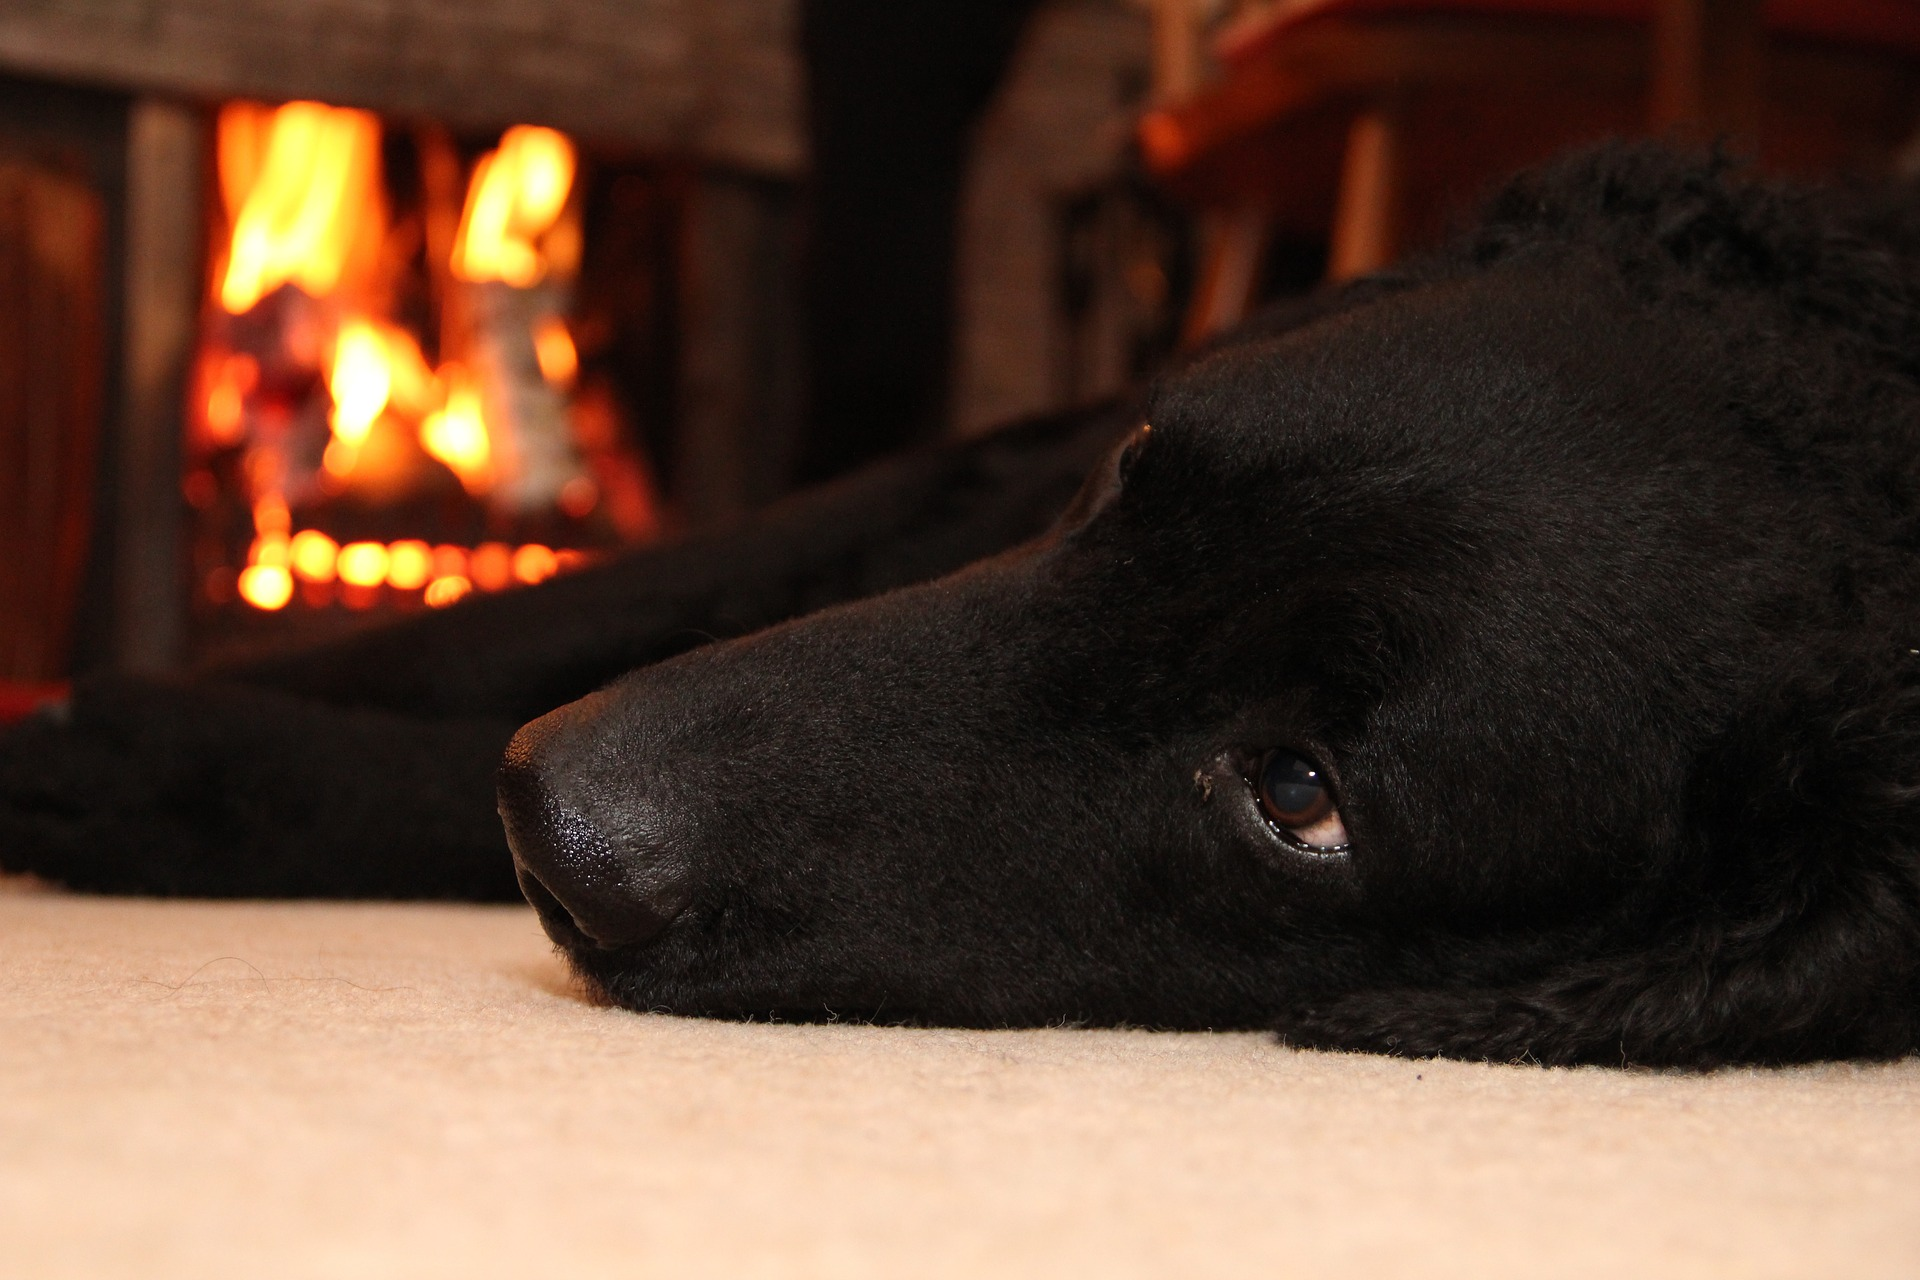 Top 5 dog-friendly restaurants with a log fire in North Cornwall